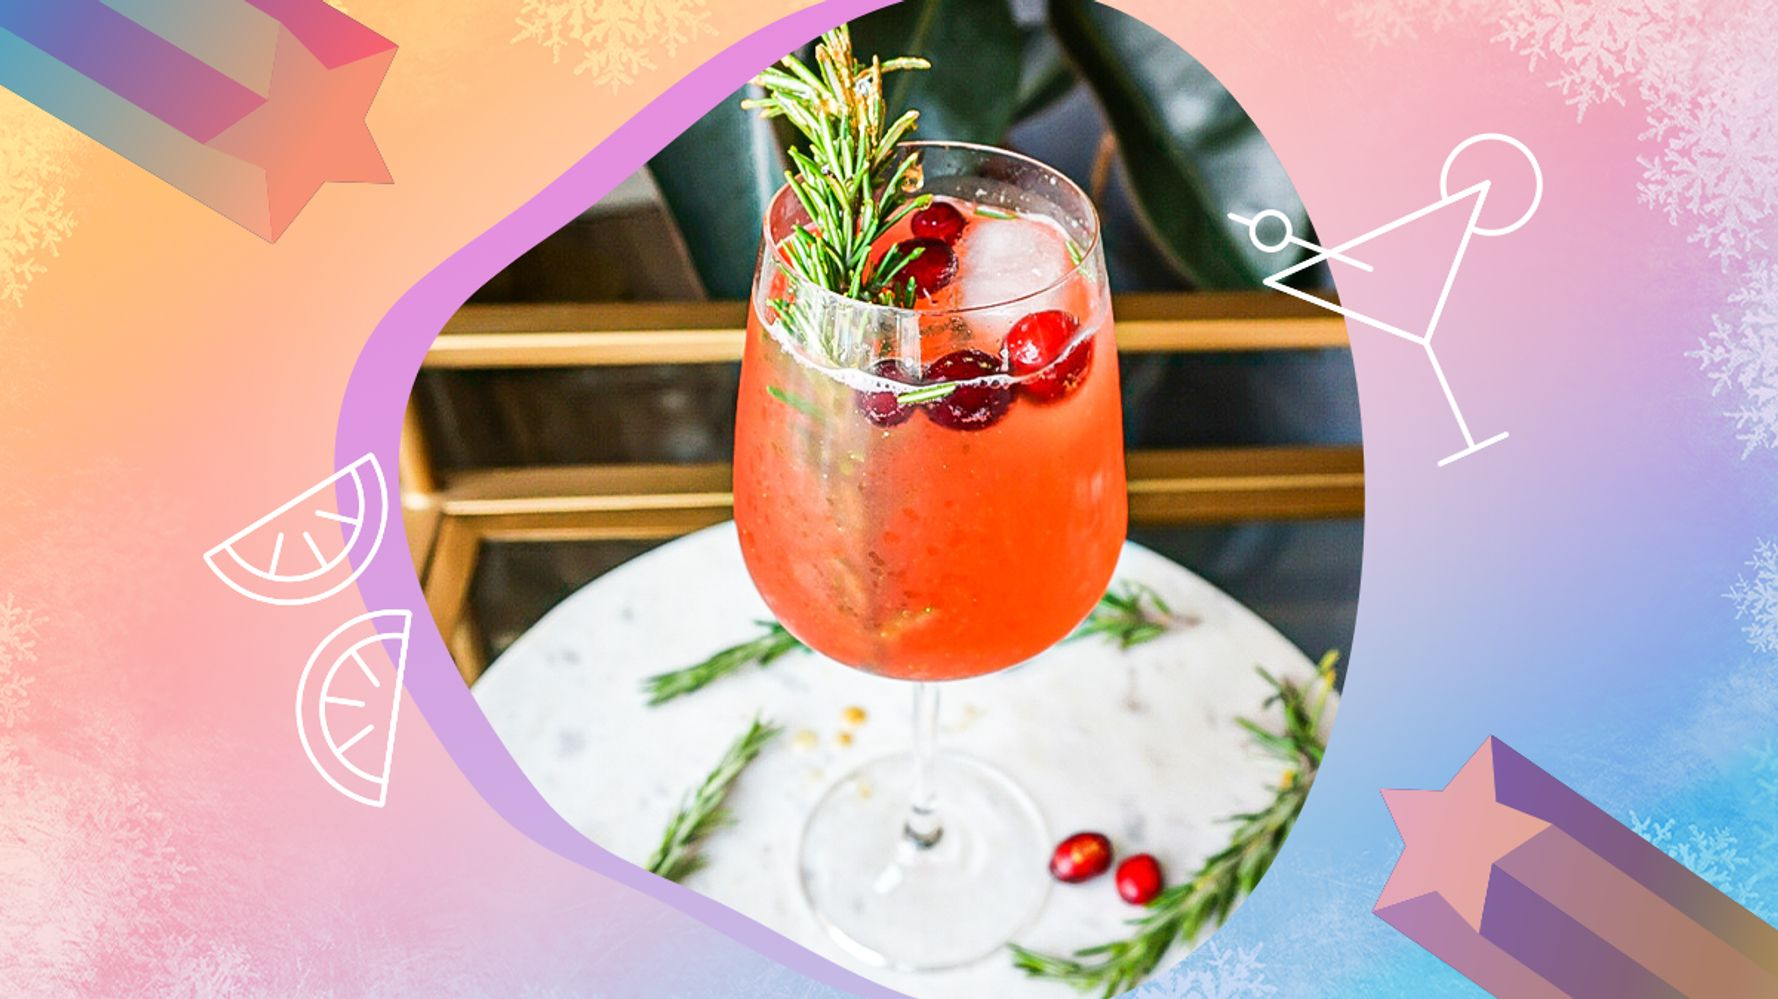 Delicious Winter Beverages To Toast To The Holiday Season